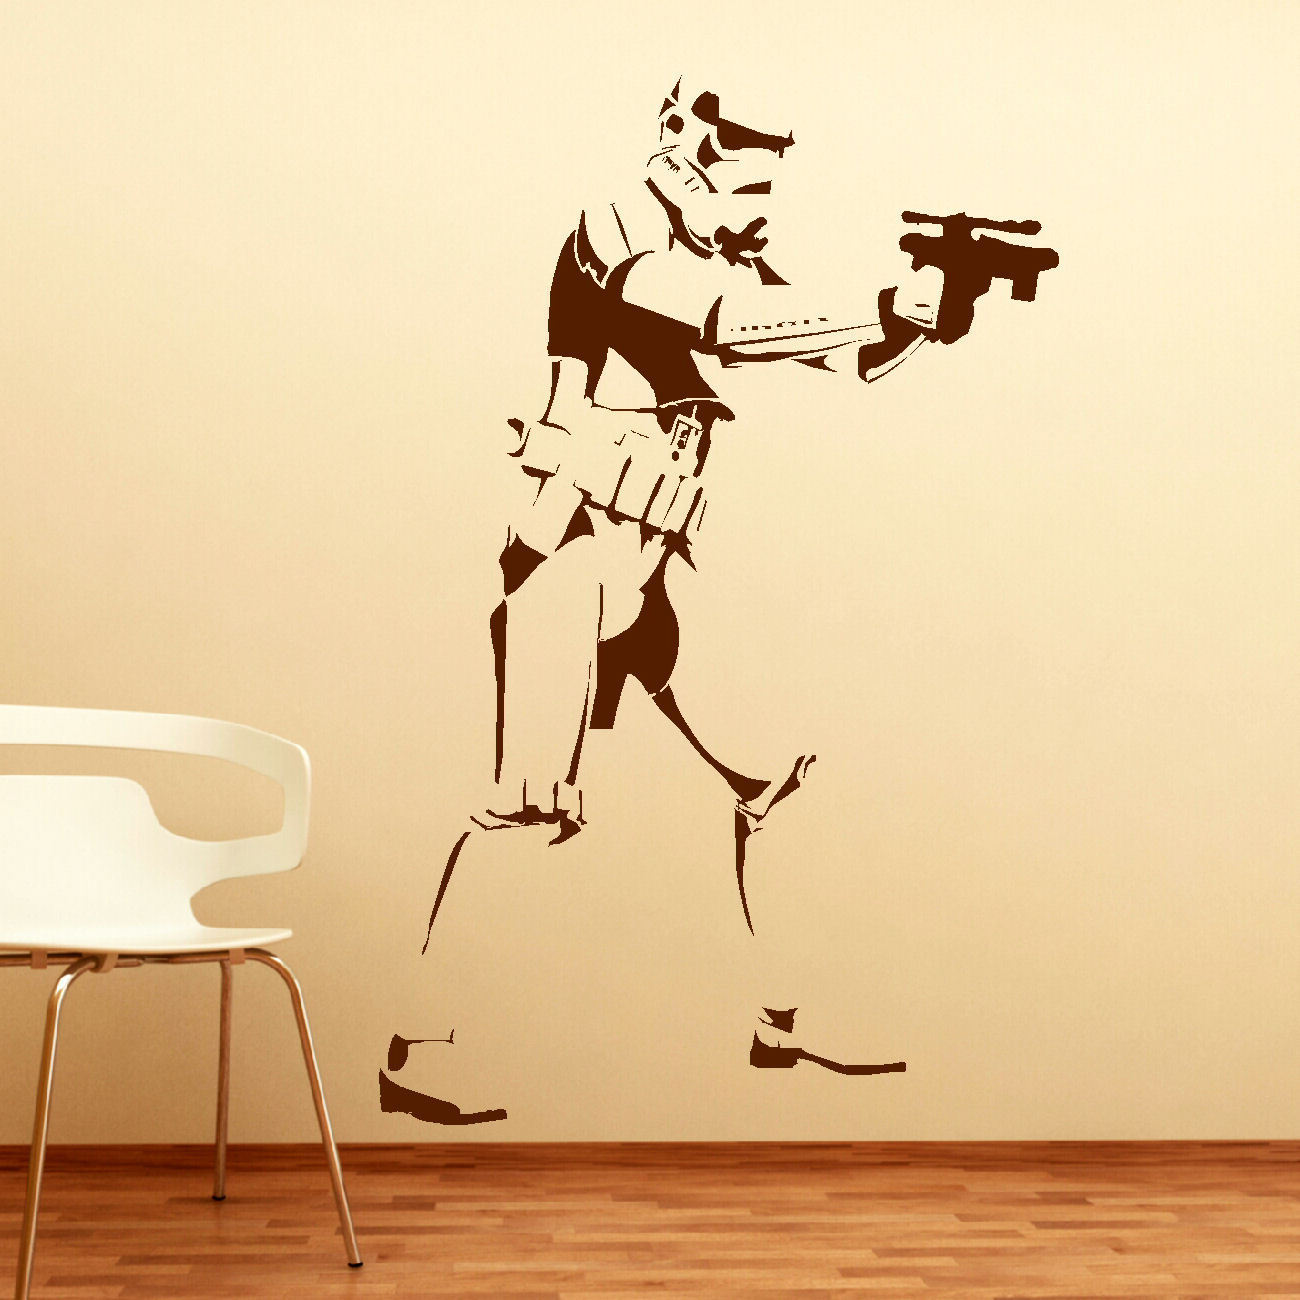 EXTRA LARGE STORM TROOPER STAR WARS LIFE SIZE WALL ART BIG MURAL ...